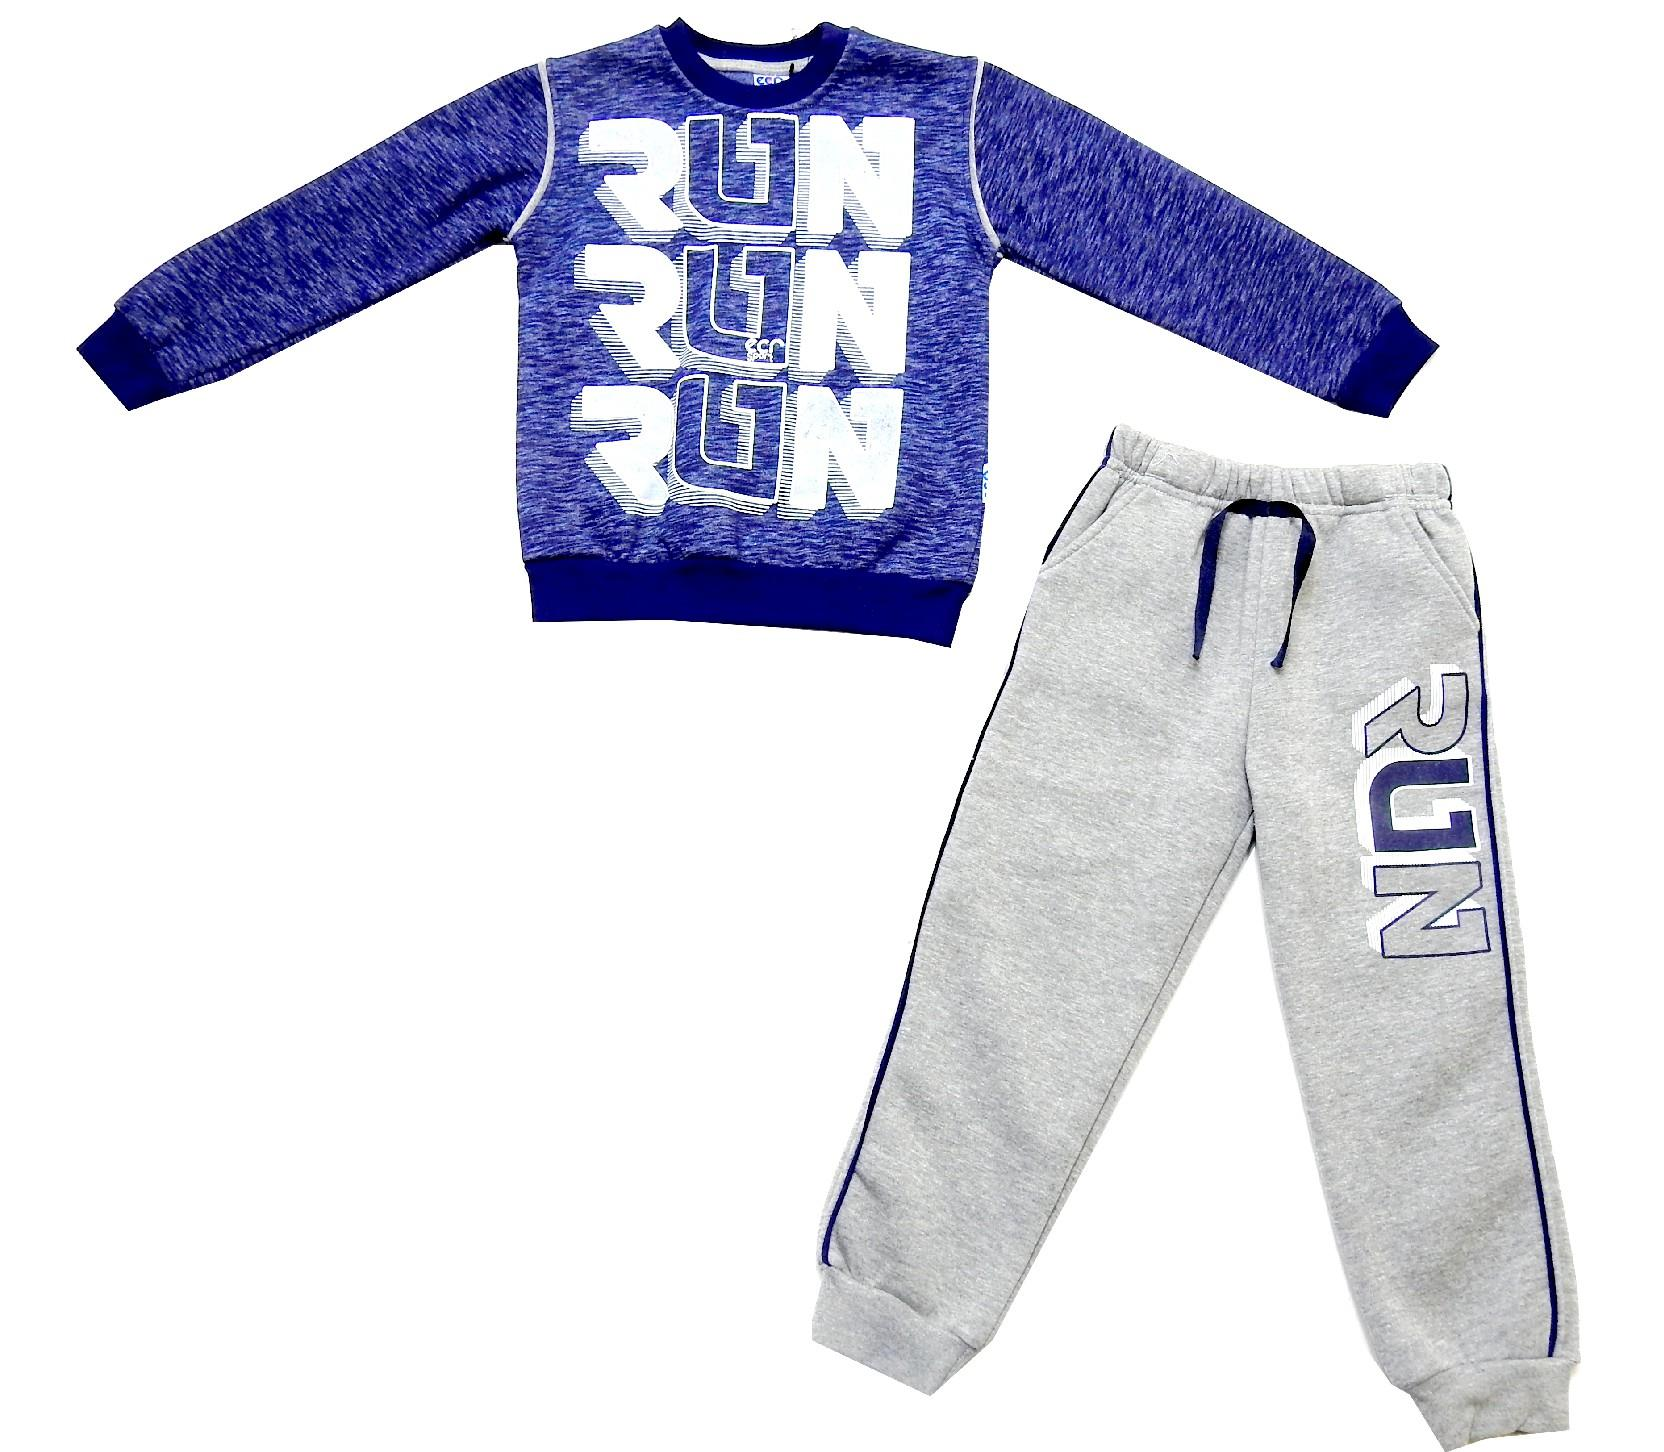 Wholesale RUN print long sleeve t-shirt and trouser double set for boy (6-7-8 age)